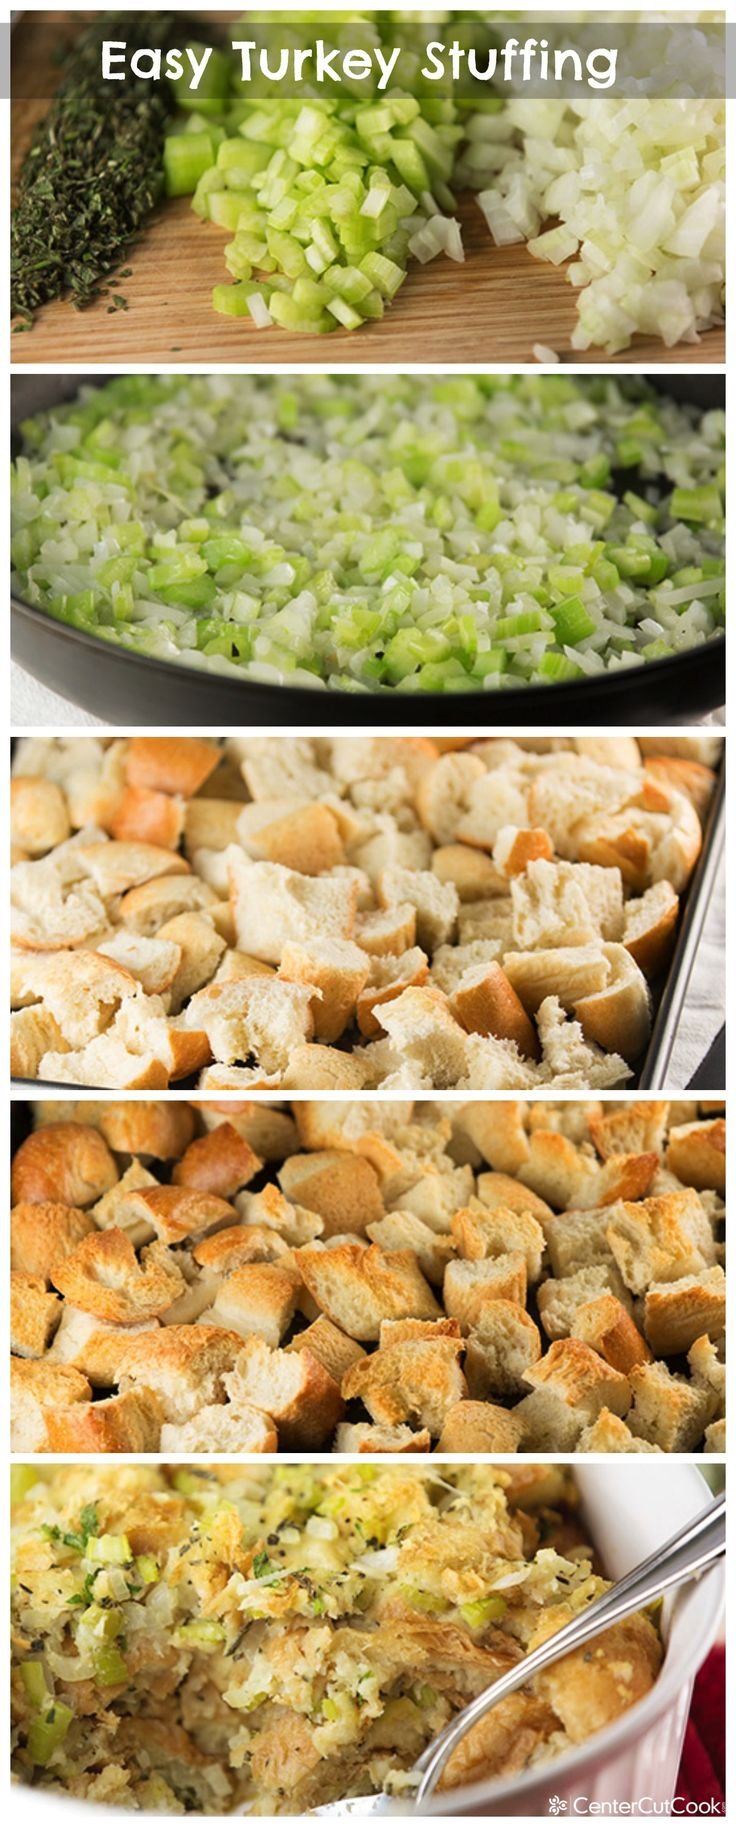 Easy Turkey Stuffing (or dressing, if you prefer) recipe that you will want on your table for Thanksgiving! #thanksgiving #stuffing